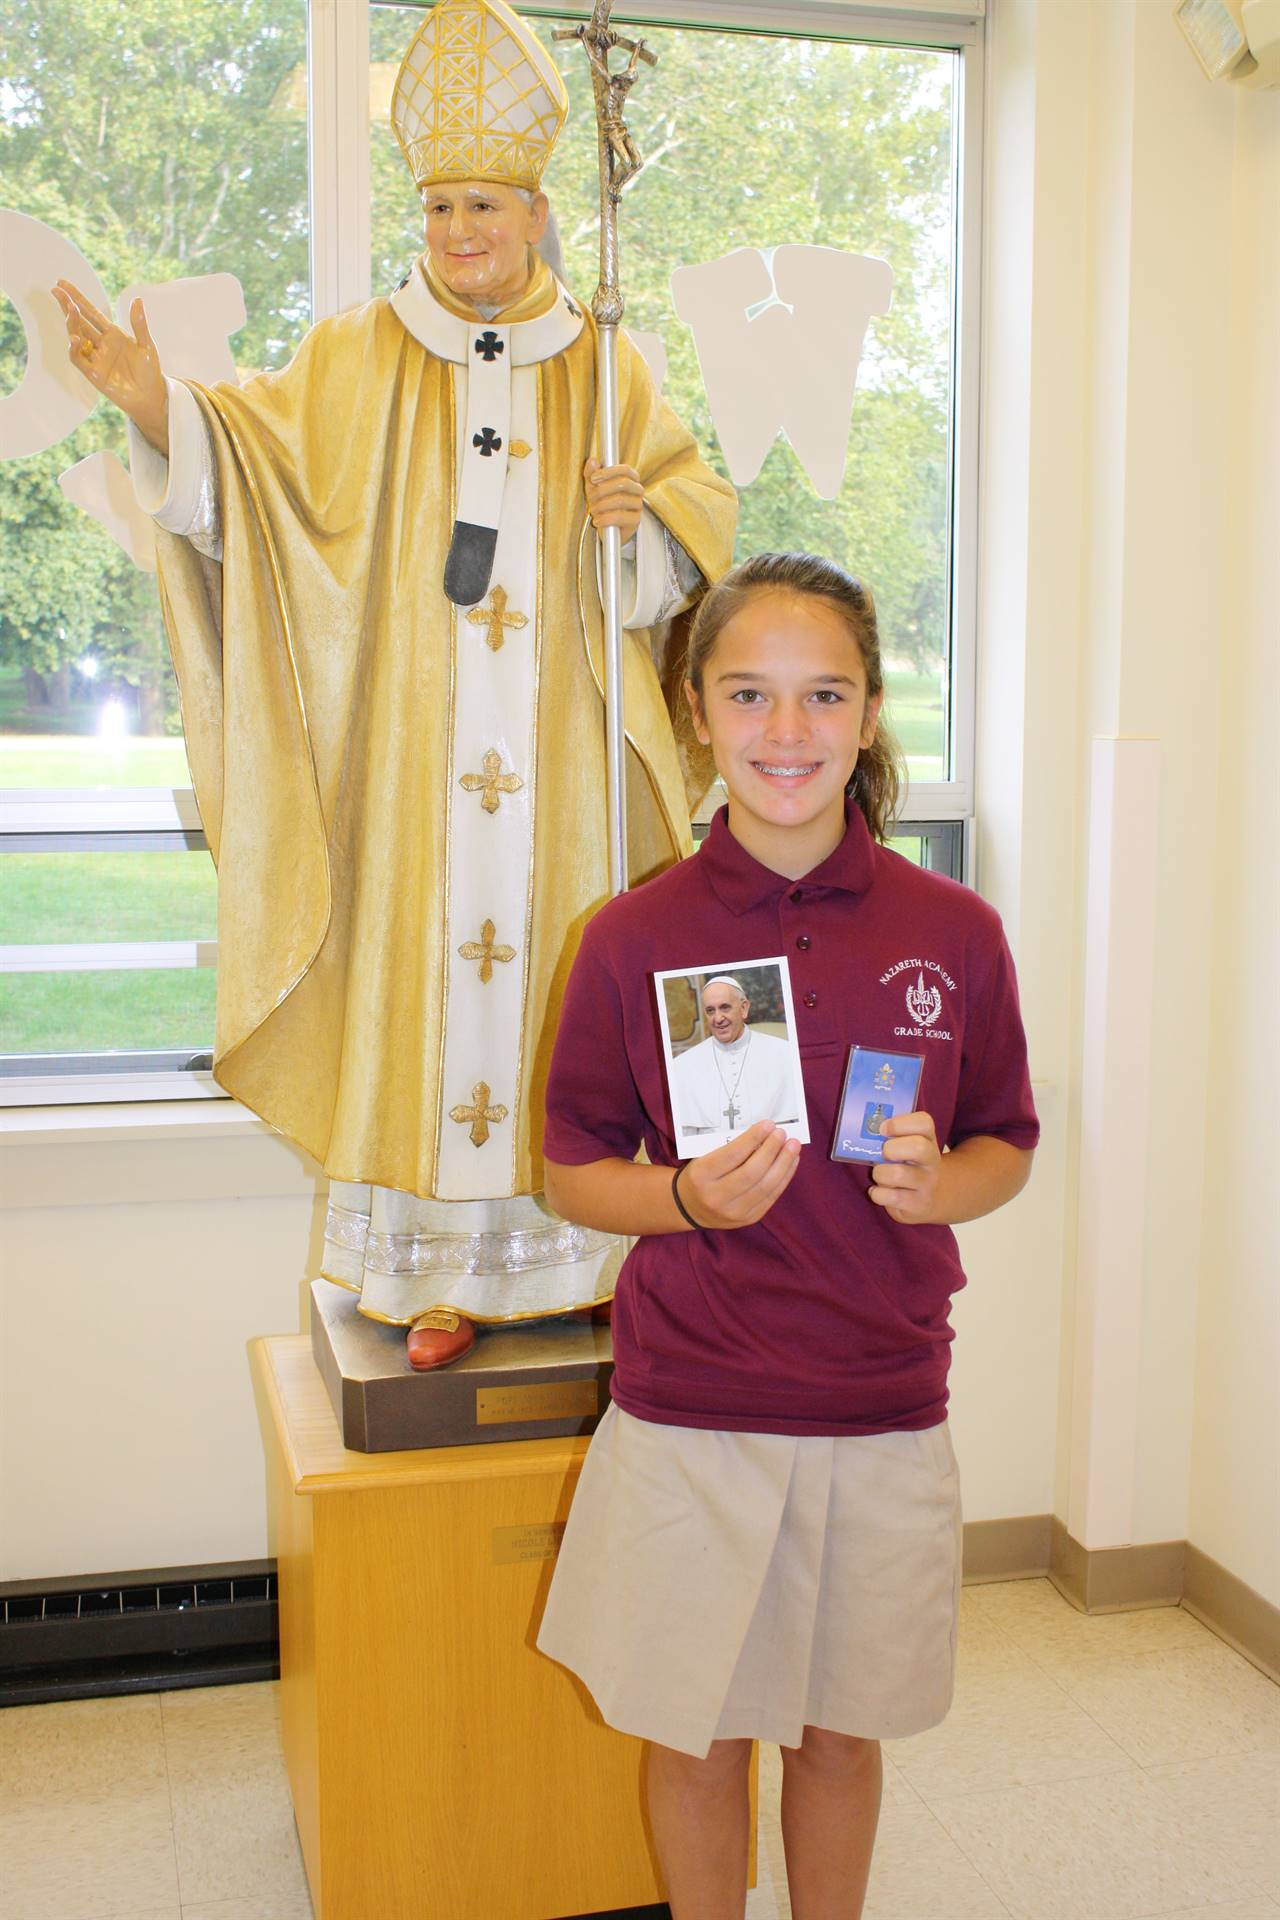 Student received response from Pope Francis